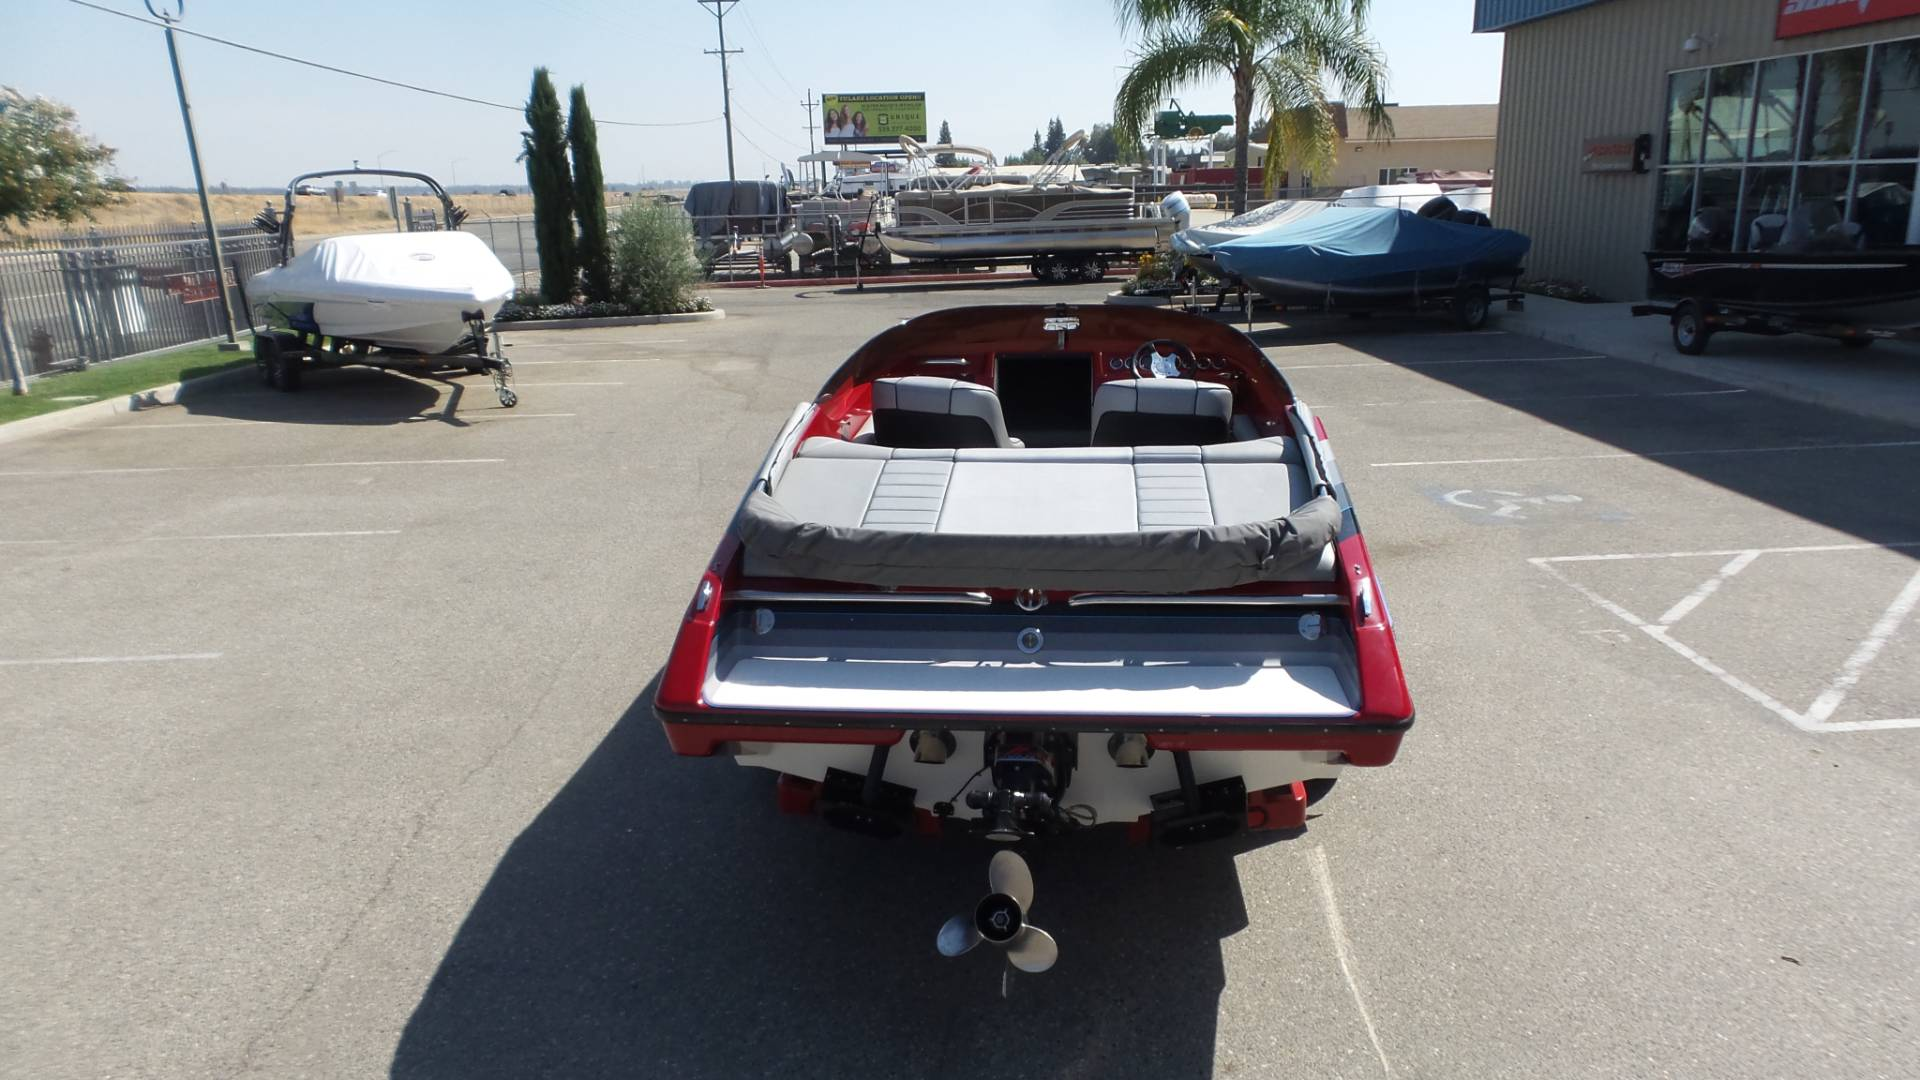 1992 Nordic Boats 23 SCANDIA in Madera, California